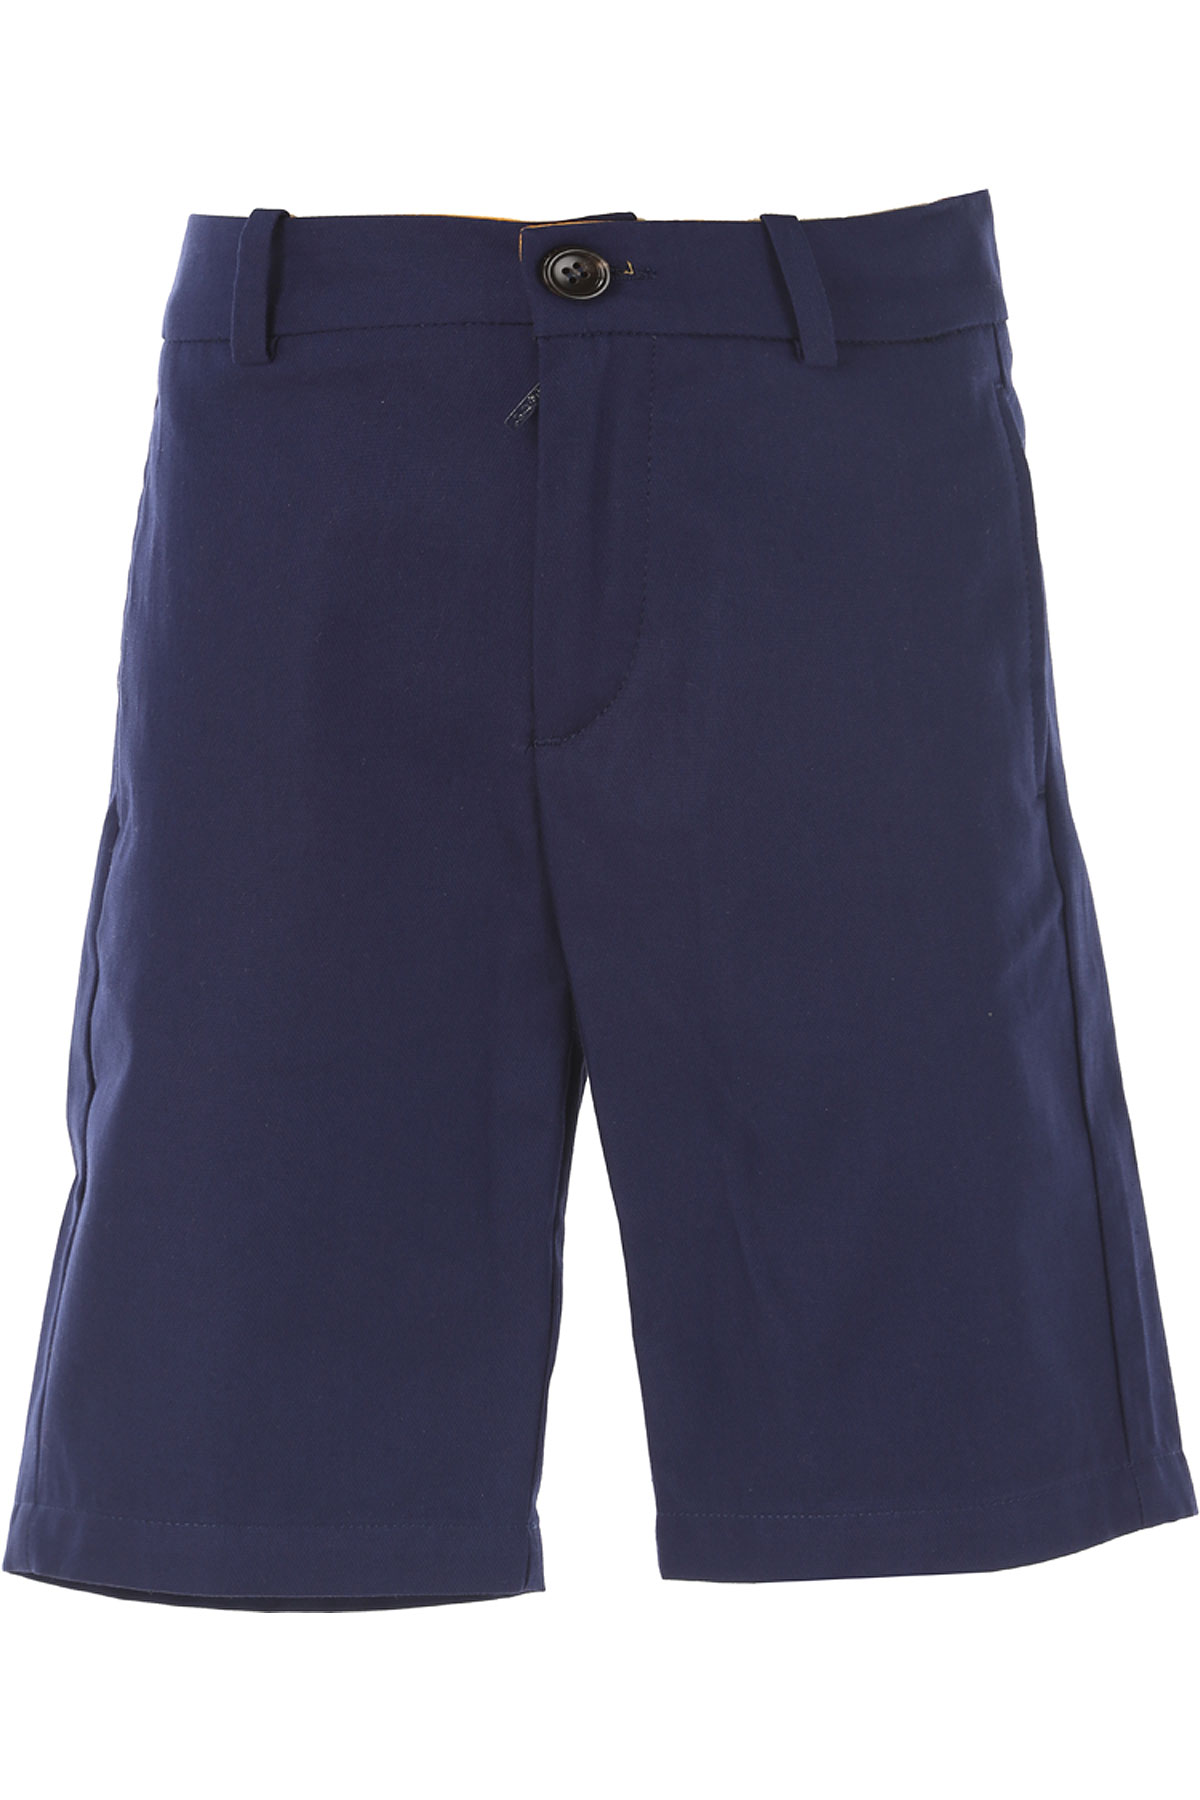 Image of Gucci Kids Shorts for Boys, Blue, Cotton, 2017, 4Y